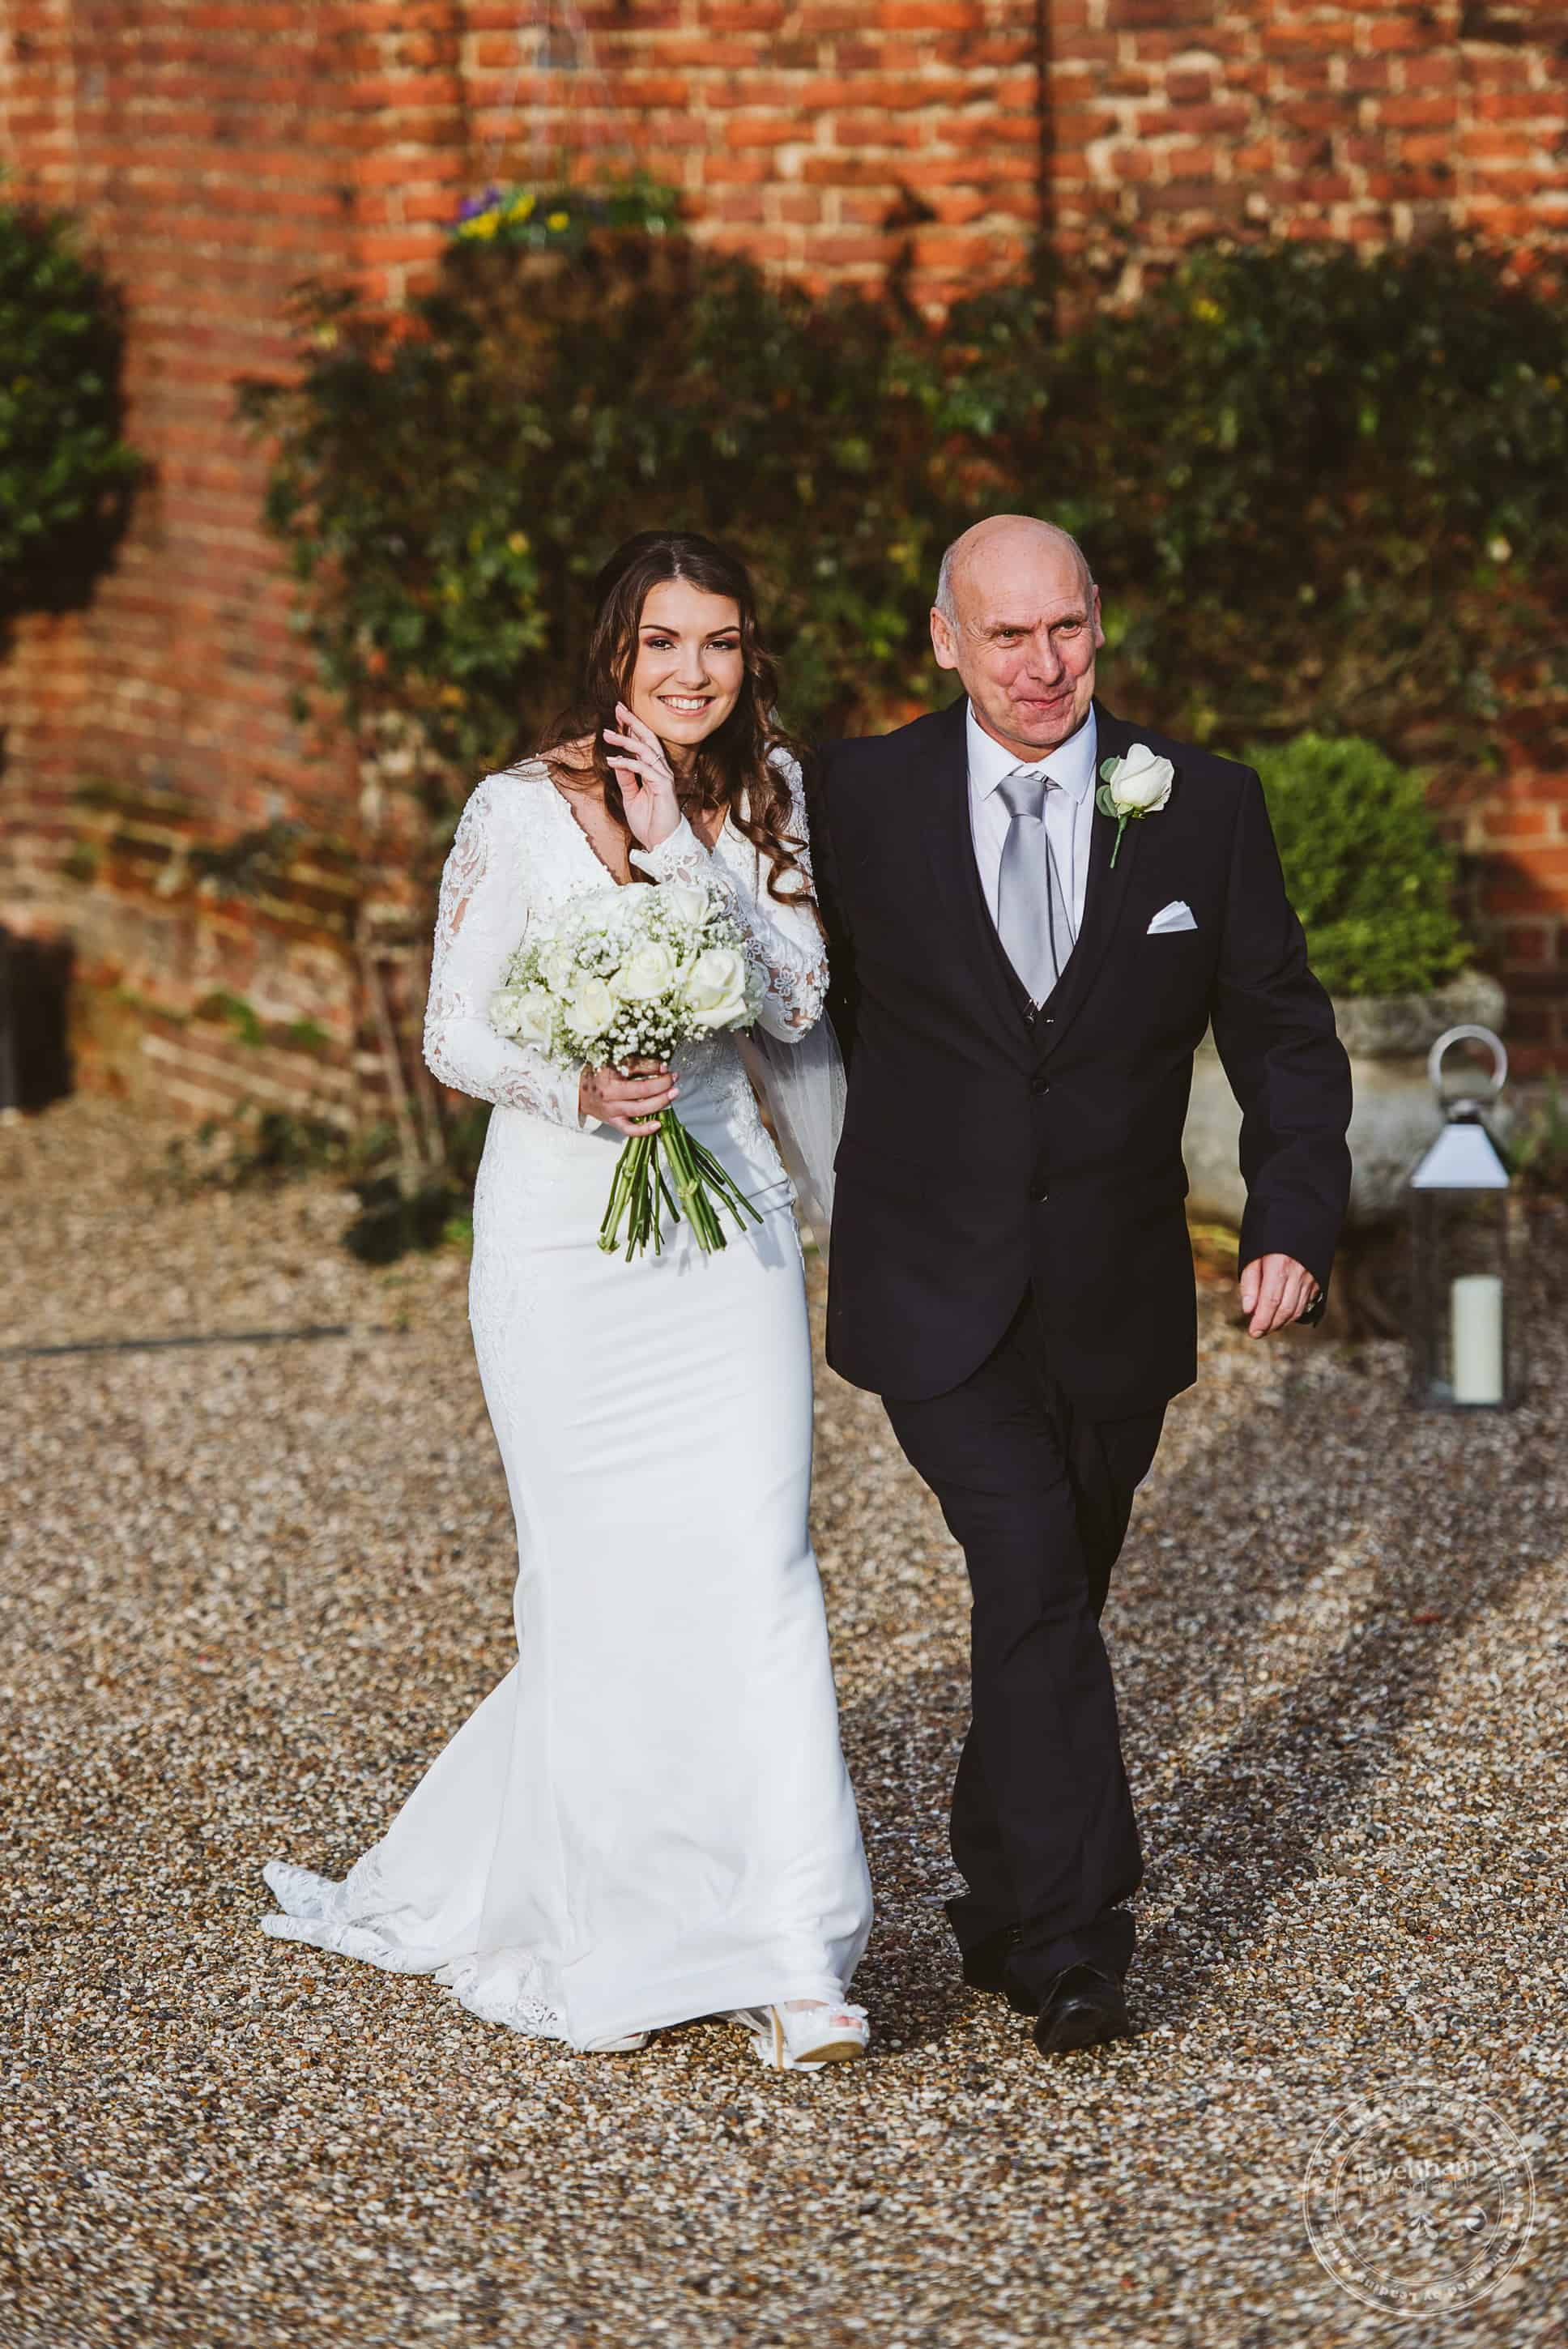 221219 Leez Priory Wedding Photoraphy 049